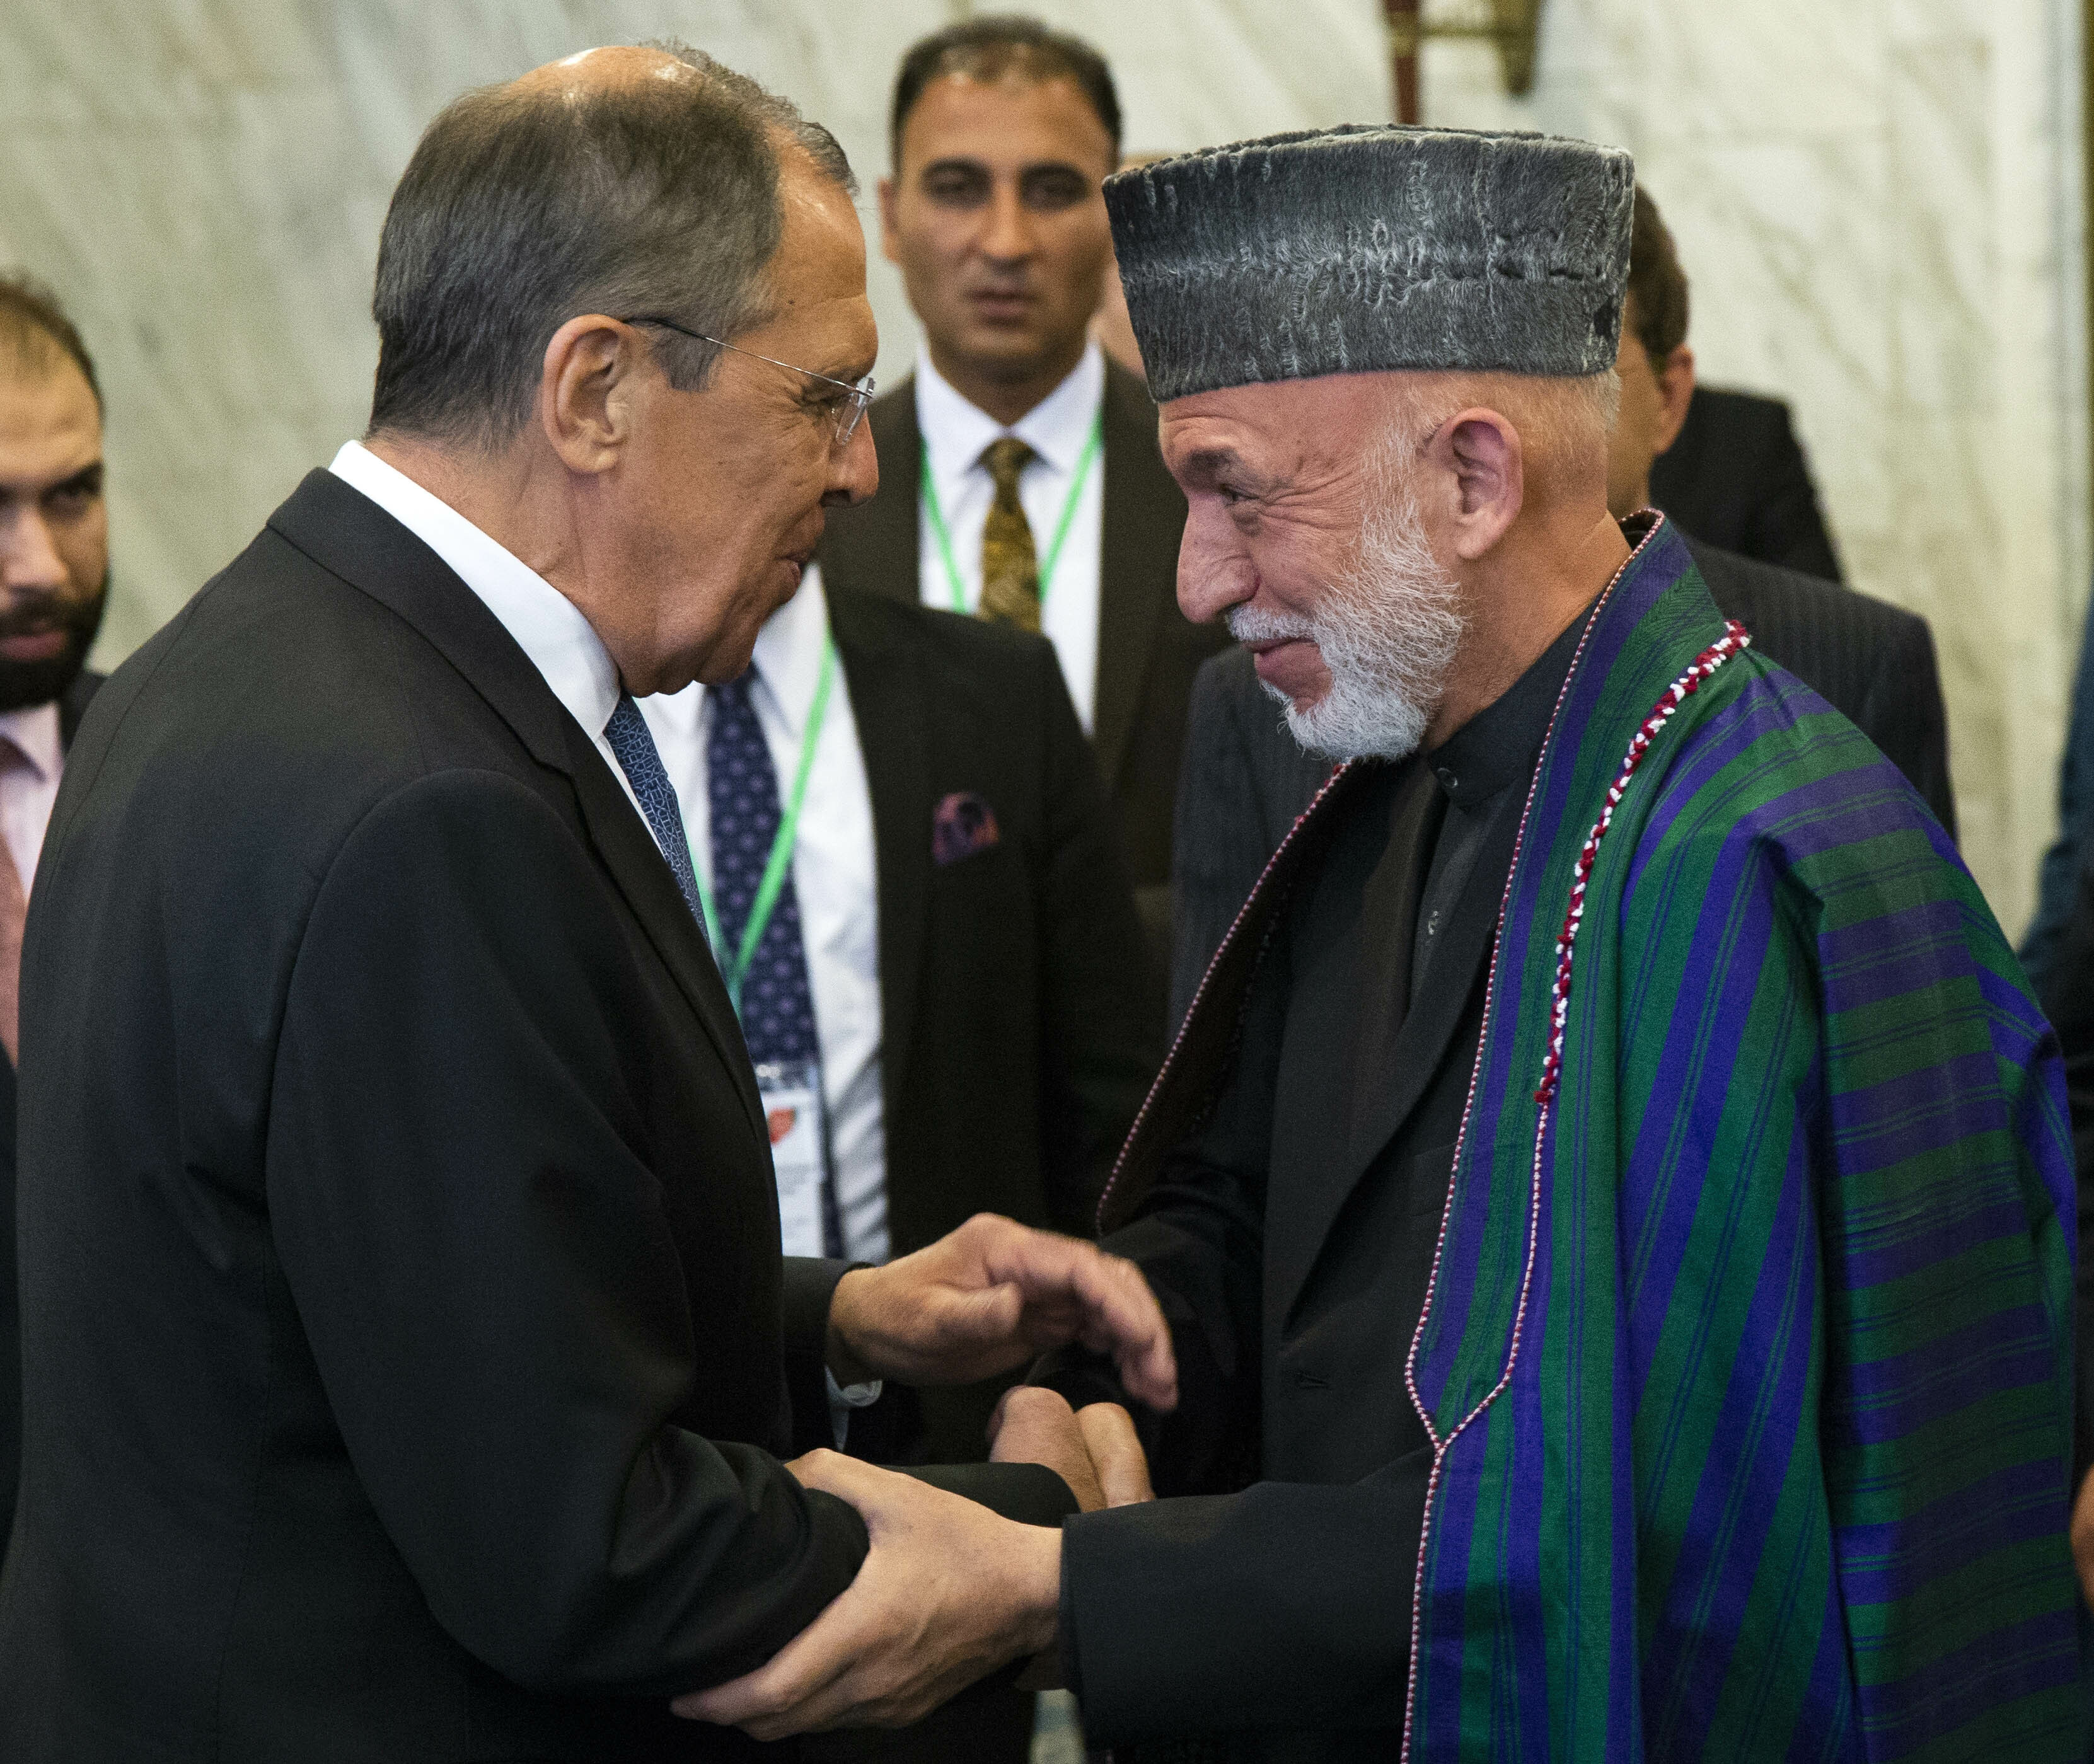 Russian Foreign Minister Sergey Lavrov, left, and former Afghan President Hamid Karzai greet each other prior to their meeting in Moscow, May 28, 2019.